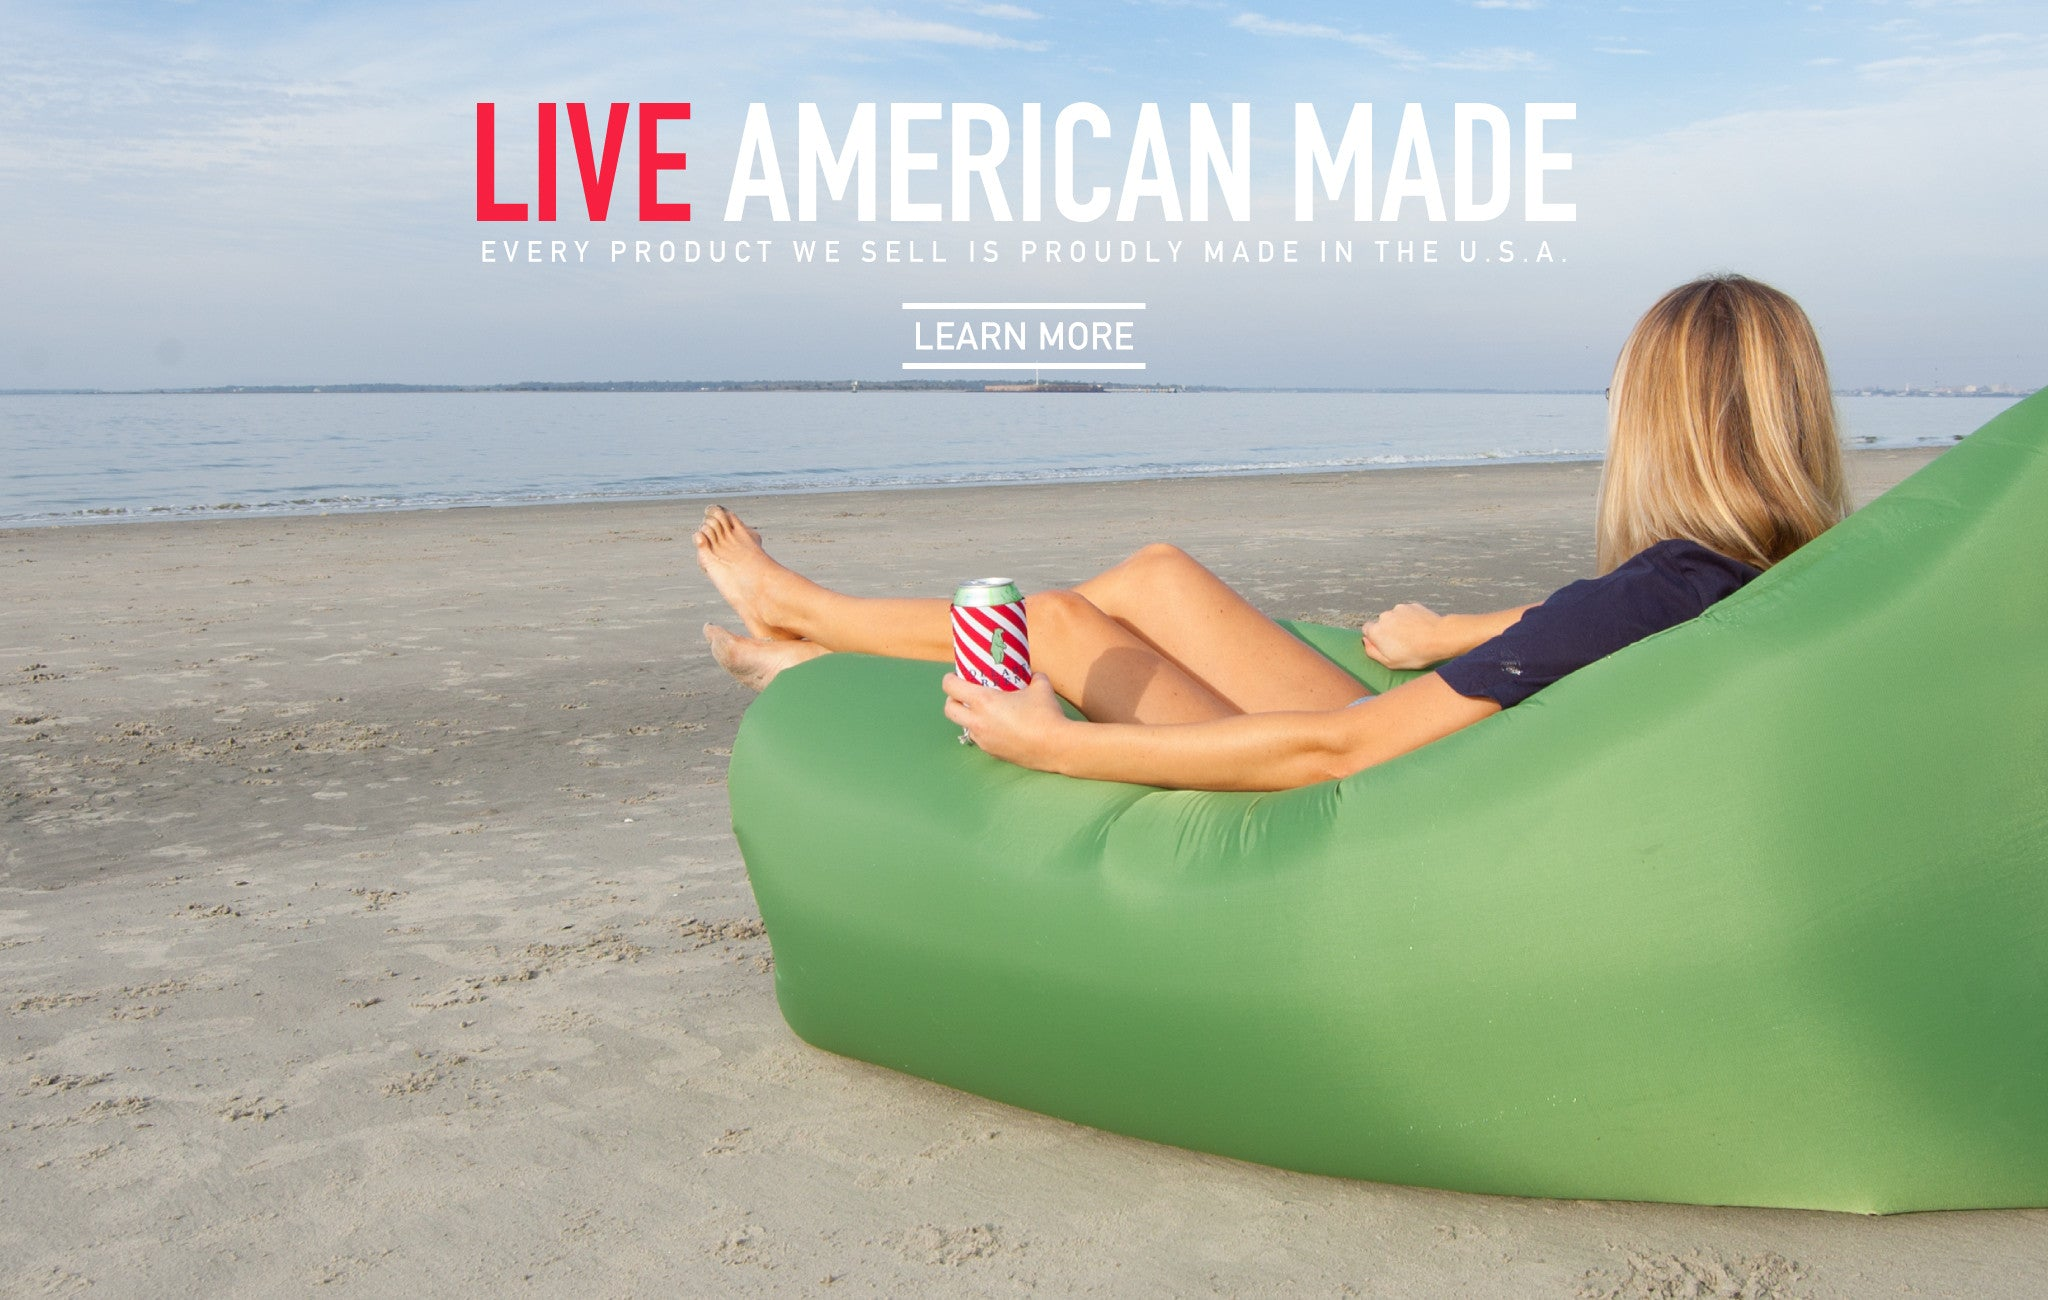 Live American Made